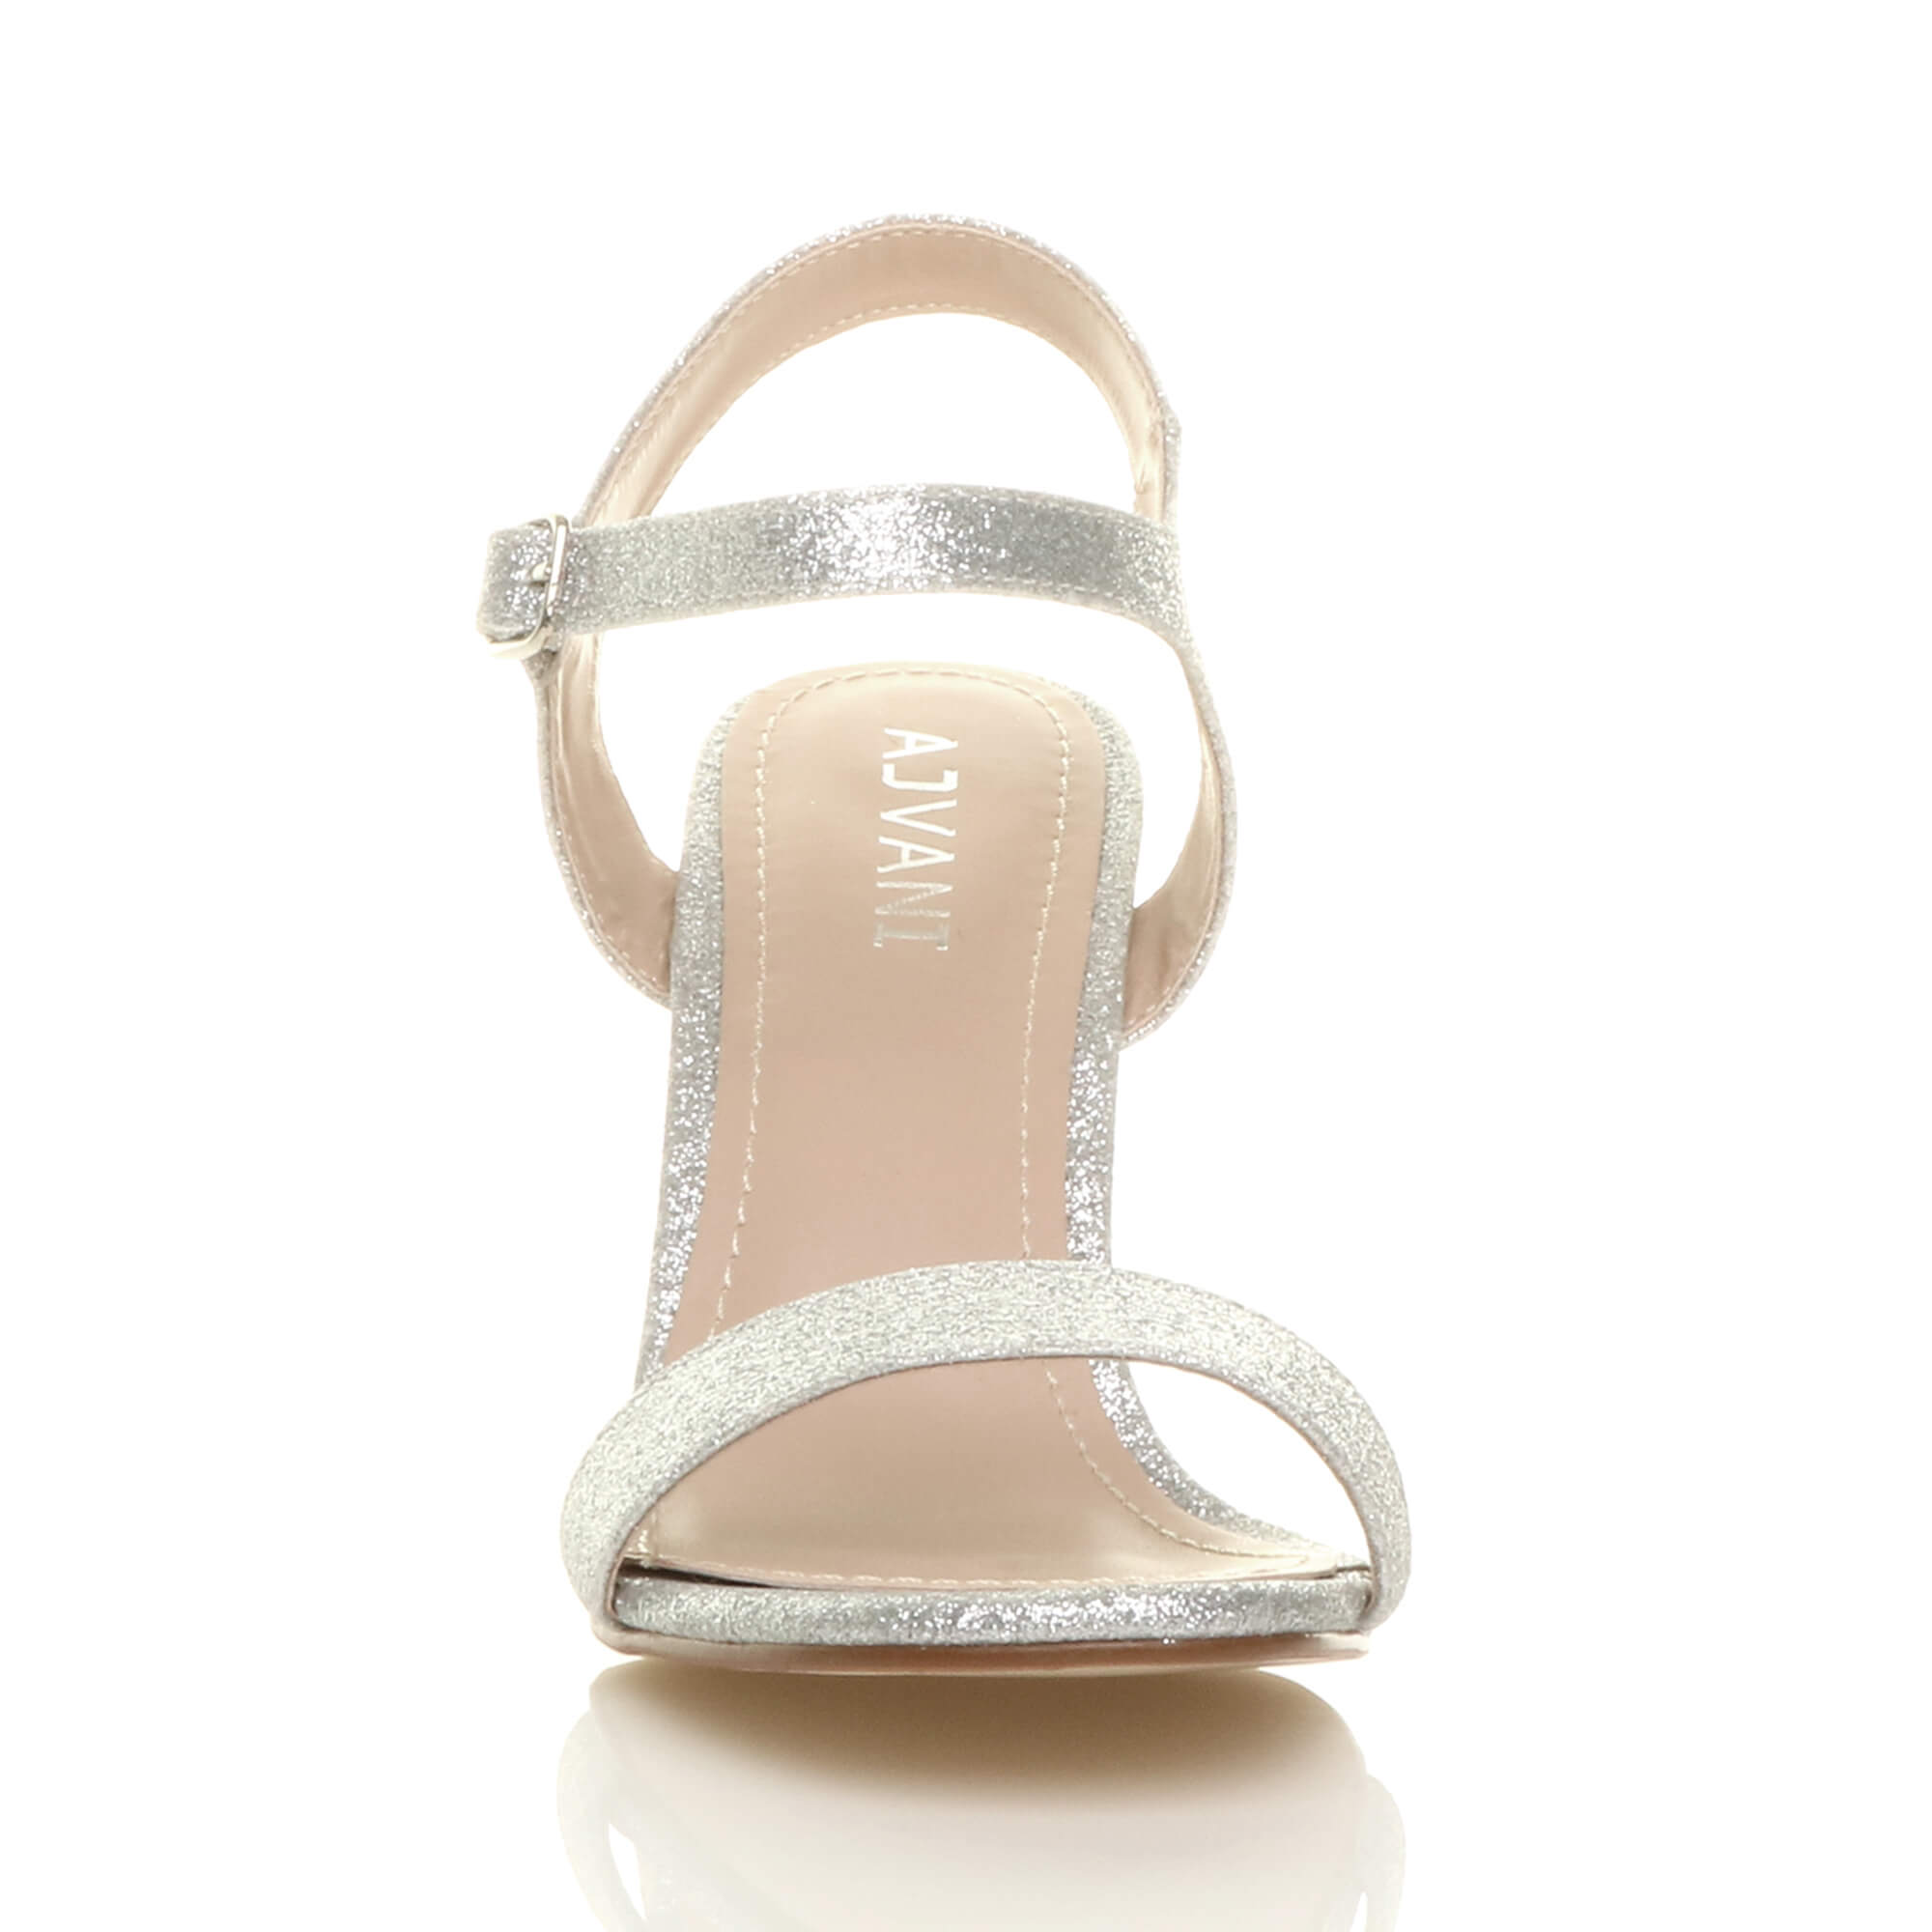 WOMENS-LADIES-HIGH-HEEL-BUCKLE-STRAPPY-BASIC-BARELY-THERE-SANDALS-SHOES-SIZE thumbnail 125